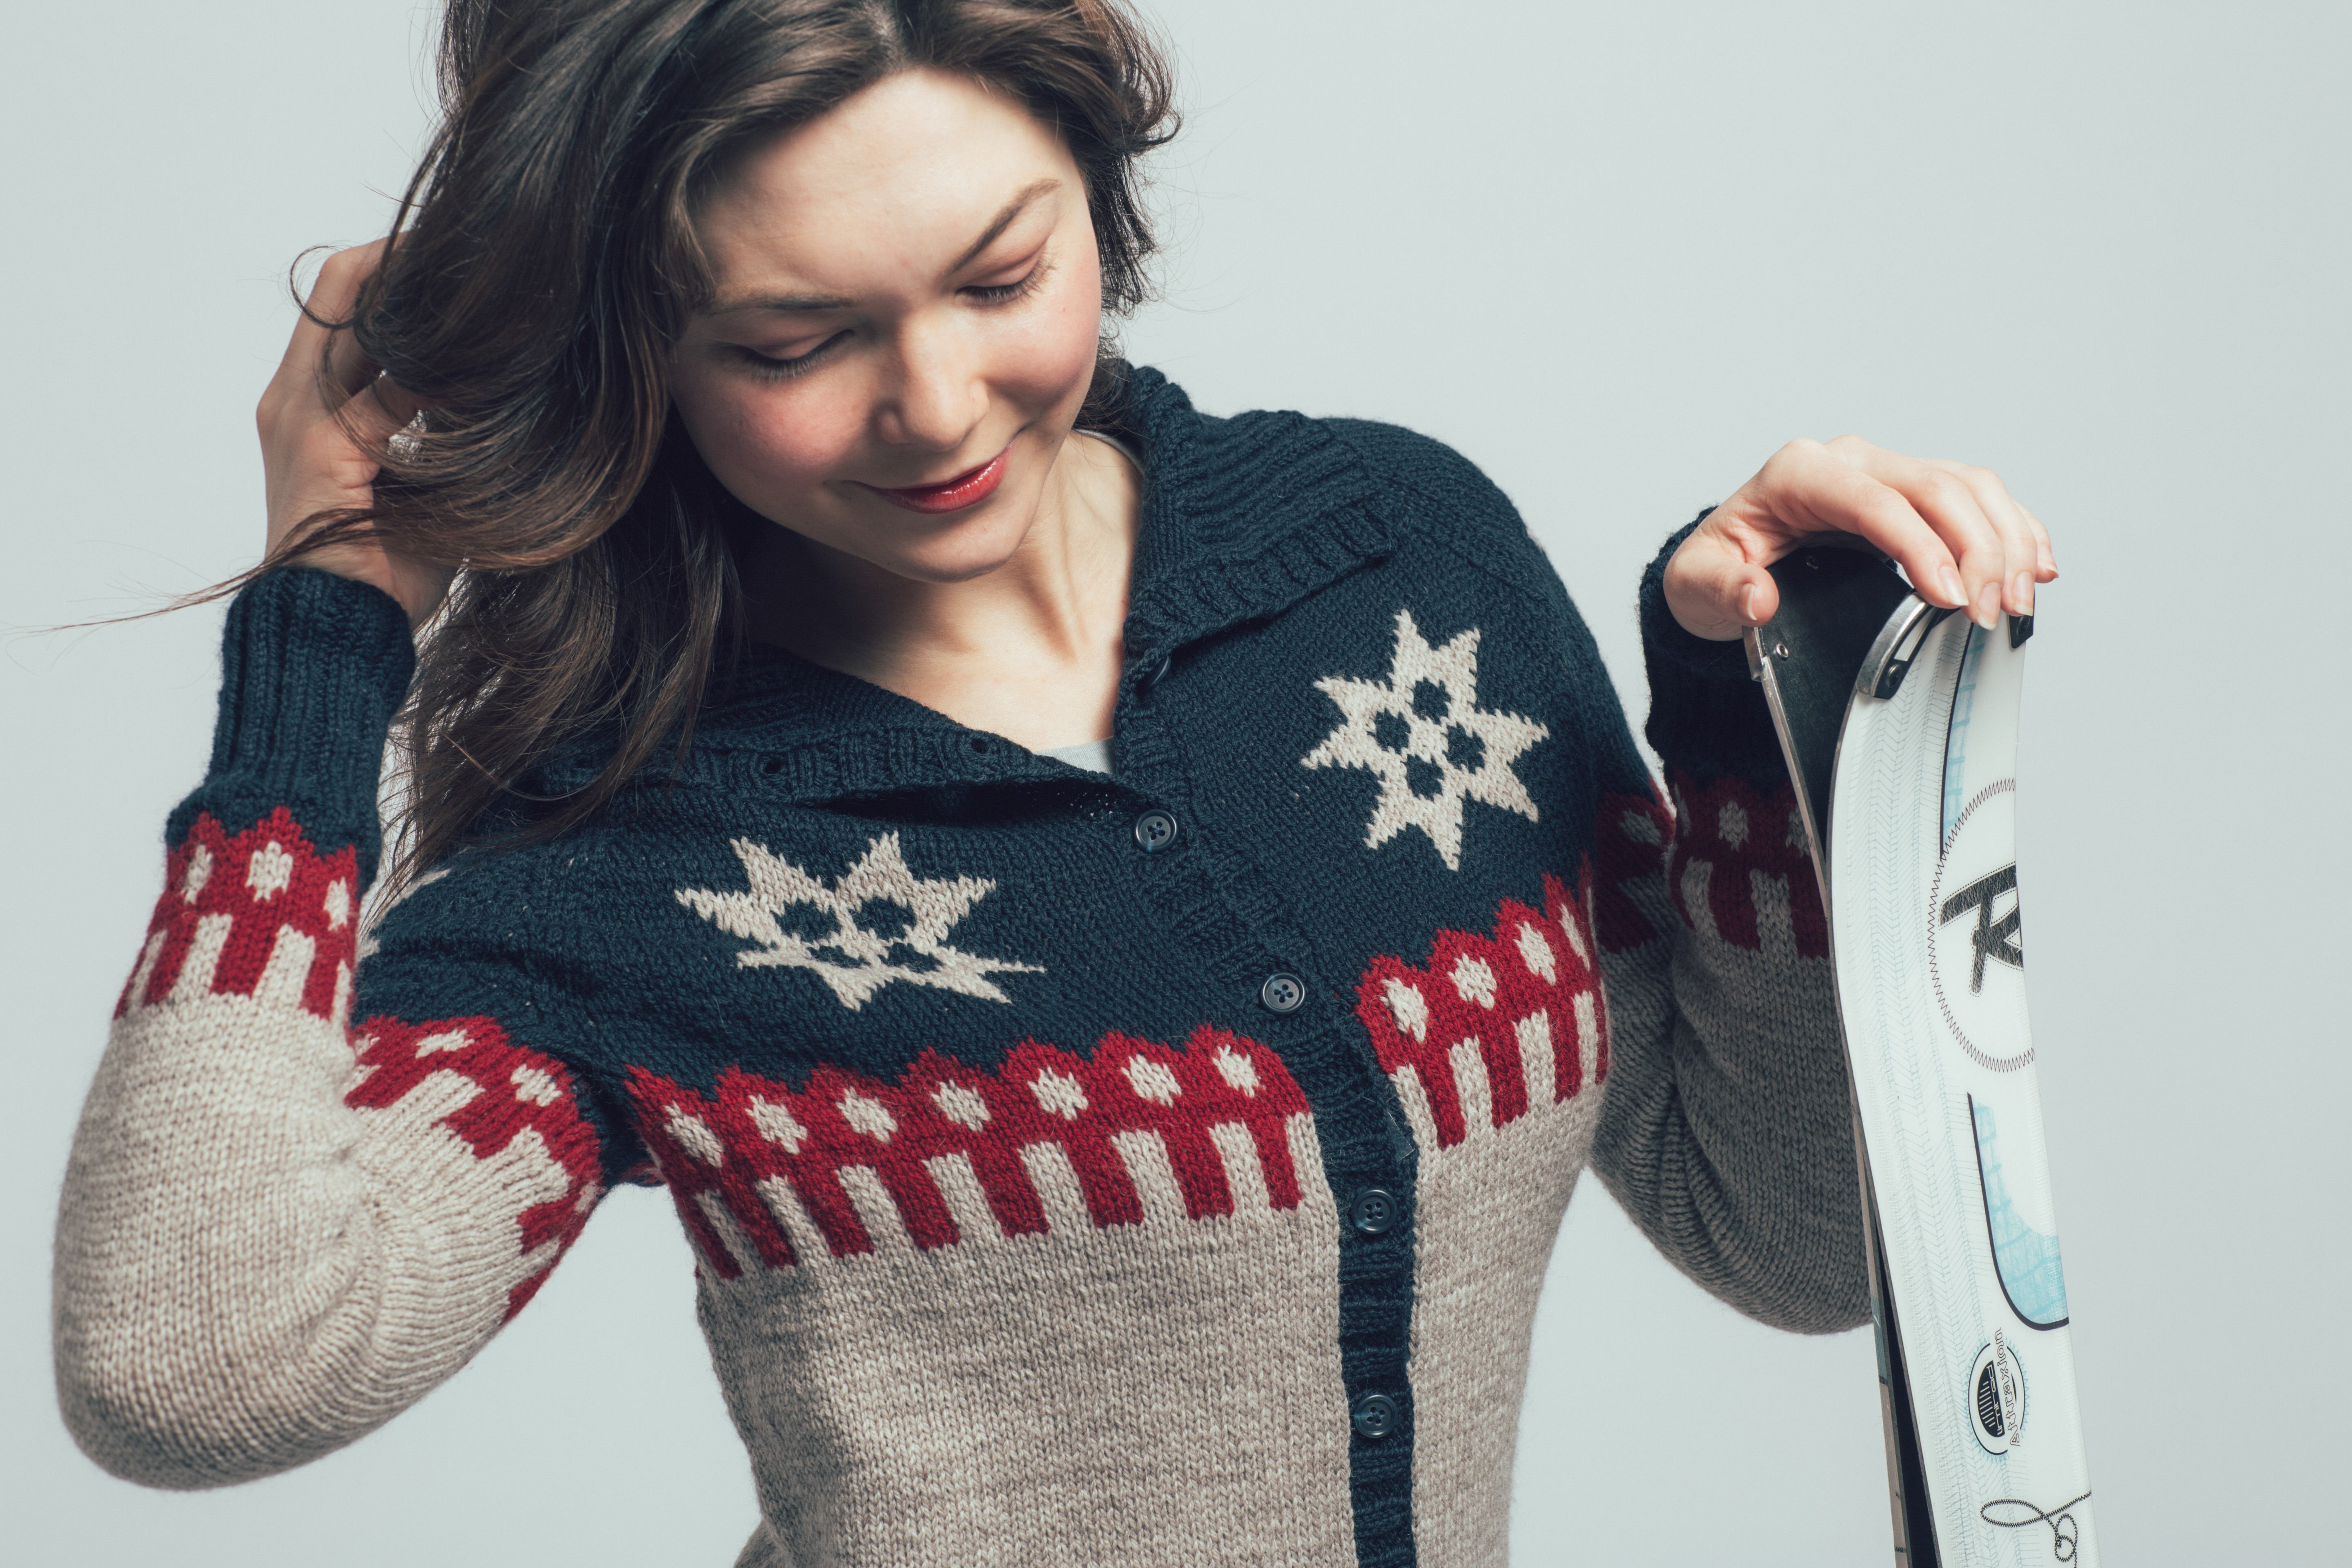 Ski Lodge Cardigan by Jesie Ostermiller from knitscene Winter 2016